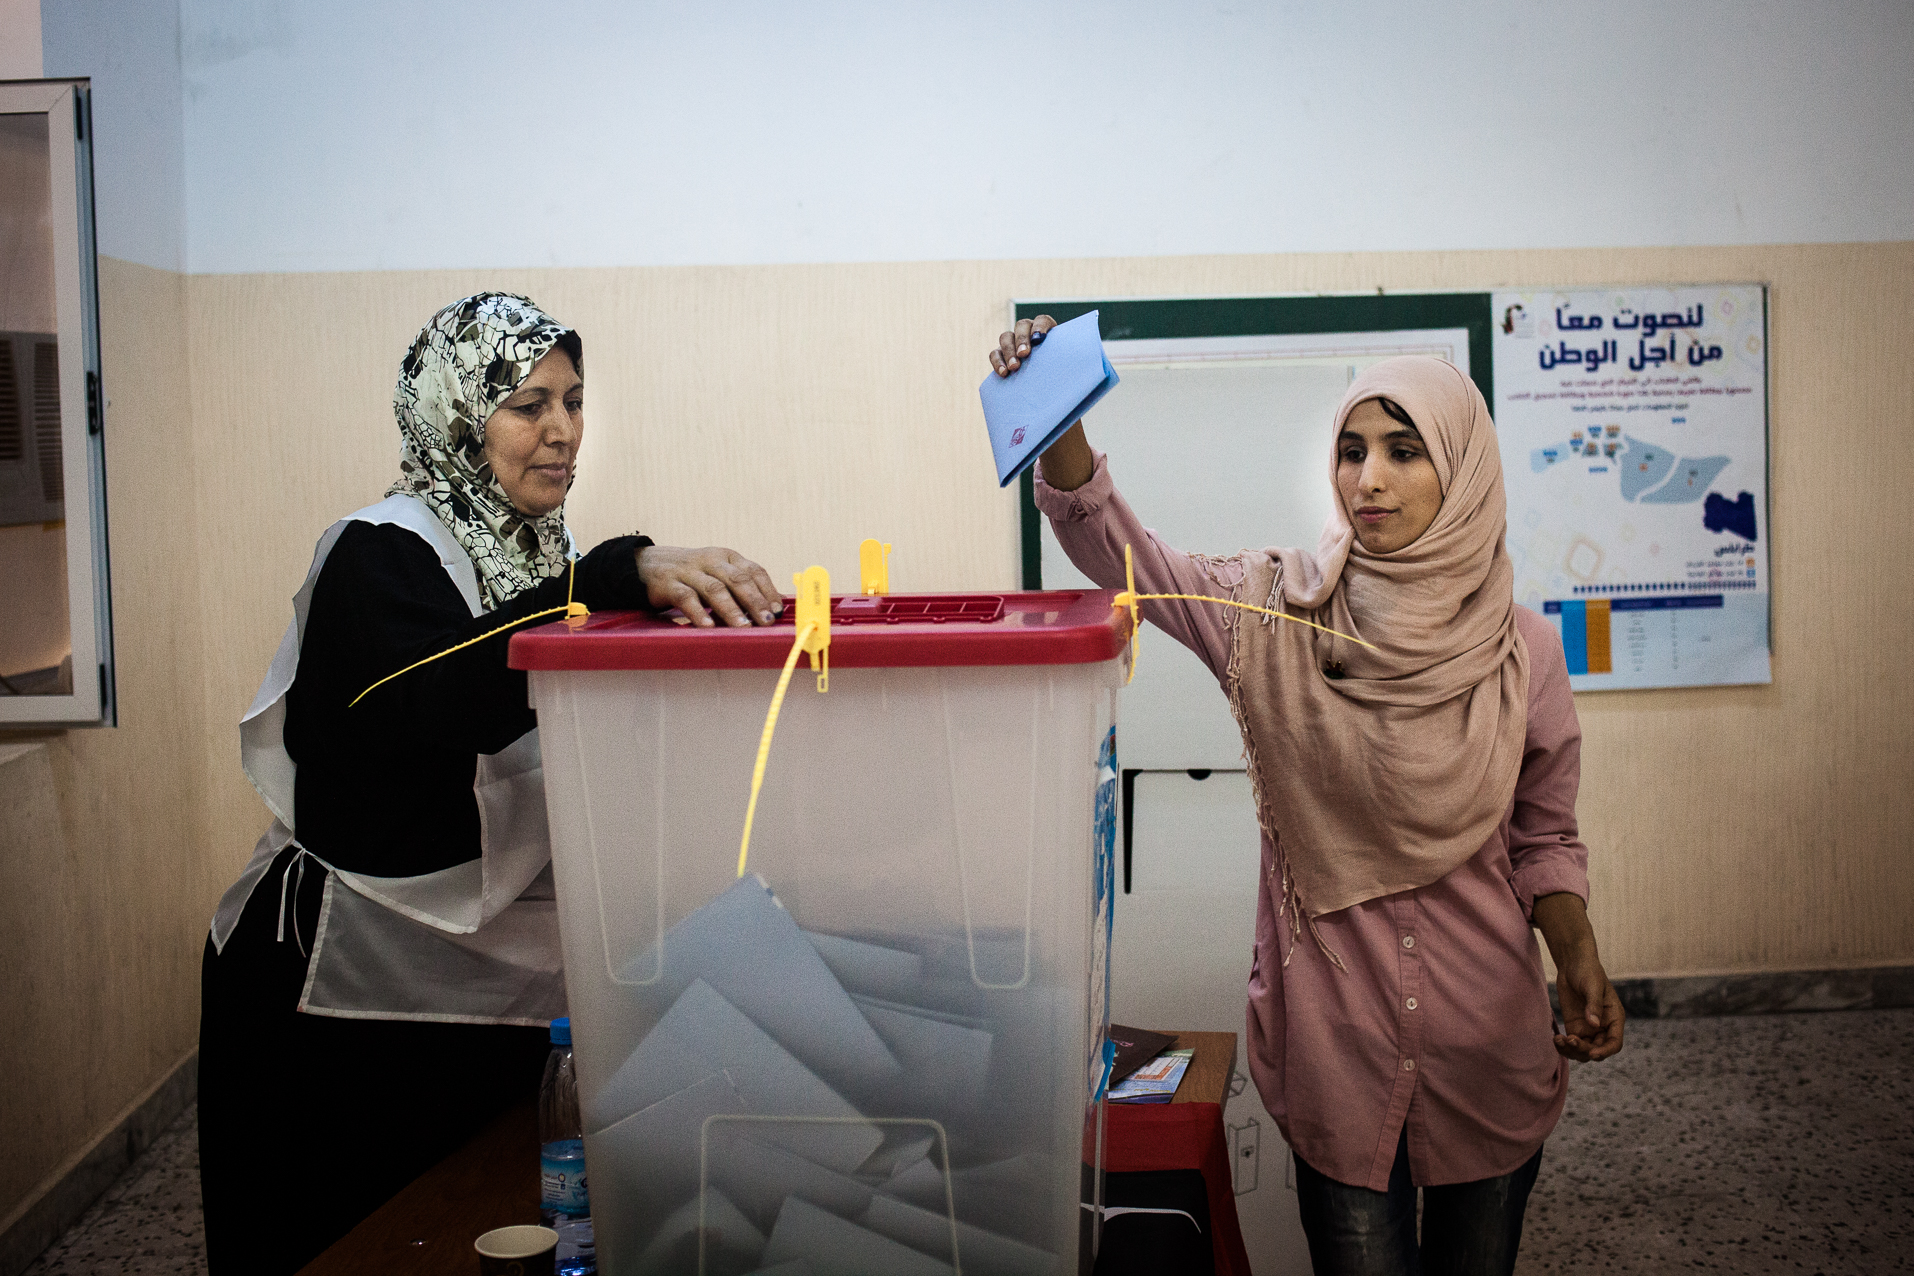 Tripoli, 7 Juillet 2012, bureau de vote pour femmes, lors des élections legislatives.  Tripoli, July 7, 2012, the polling station for women during the legislative elections.